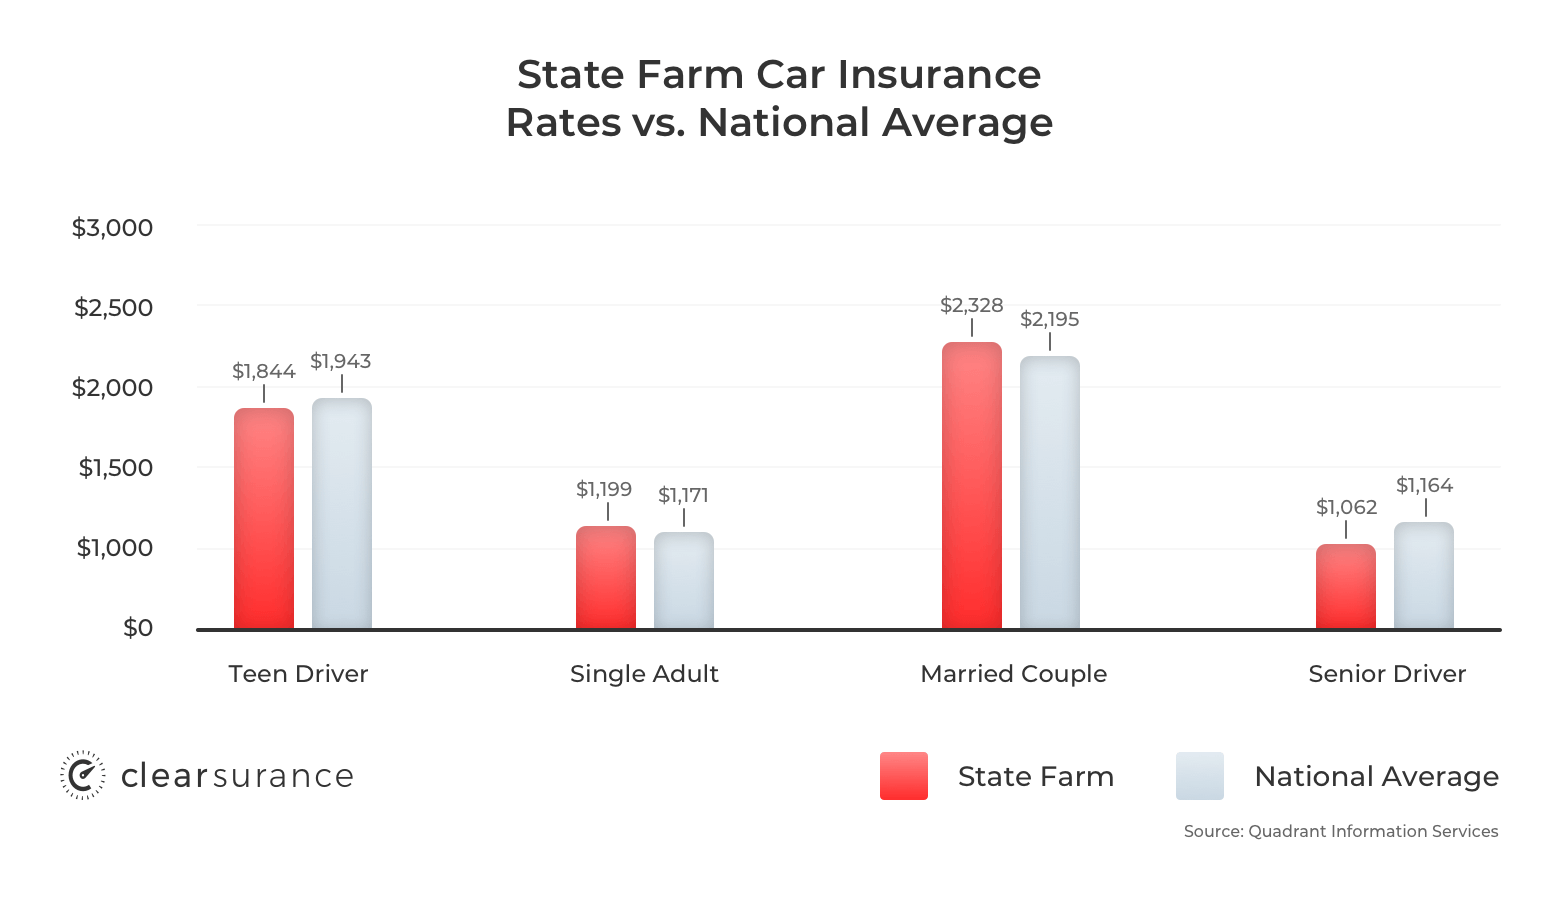 State Farm car insurance rates